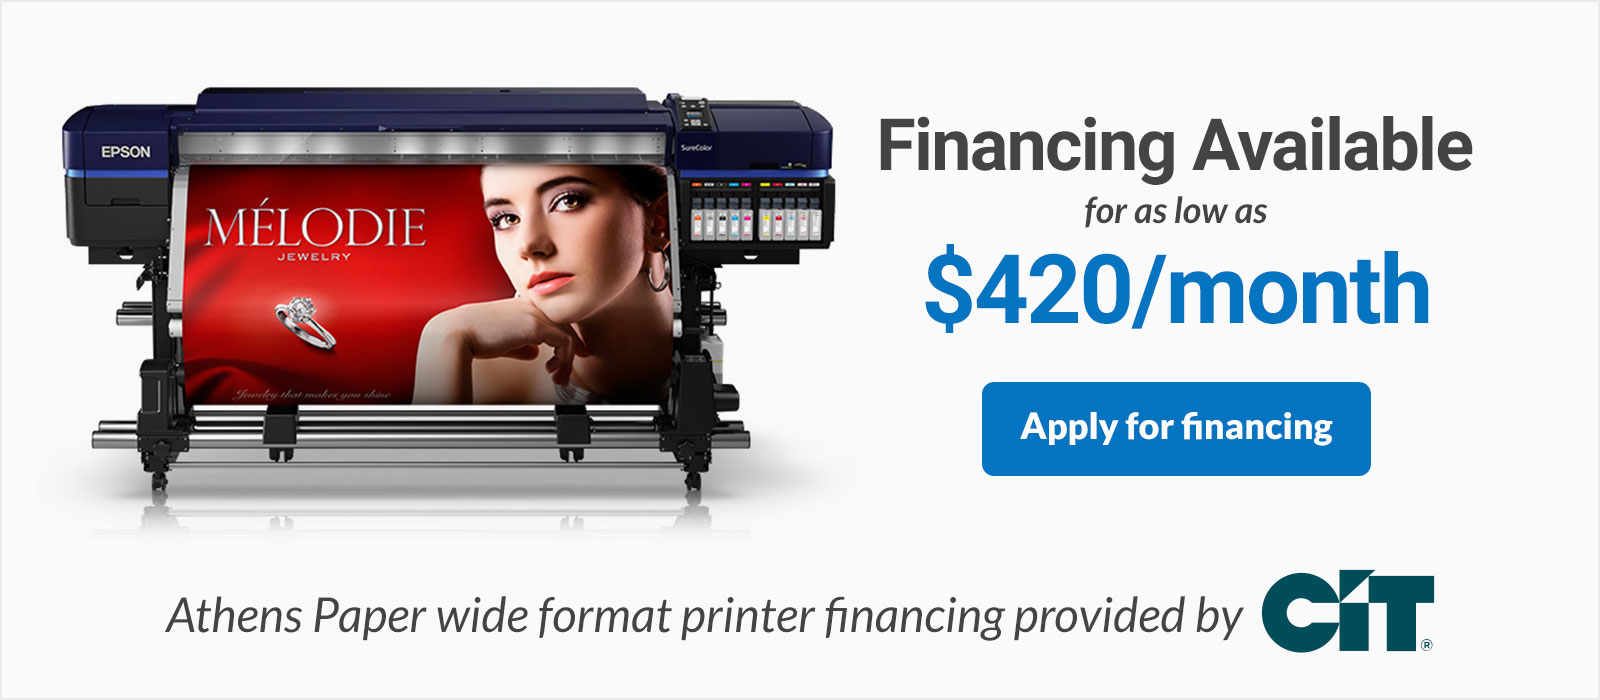 Epson SureColor S80600 Printer Financing Authorized Dealer Sale Price